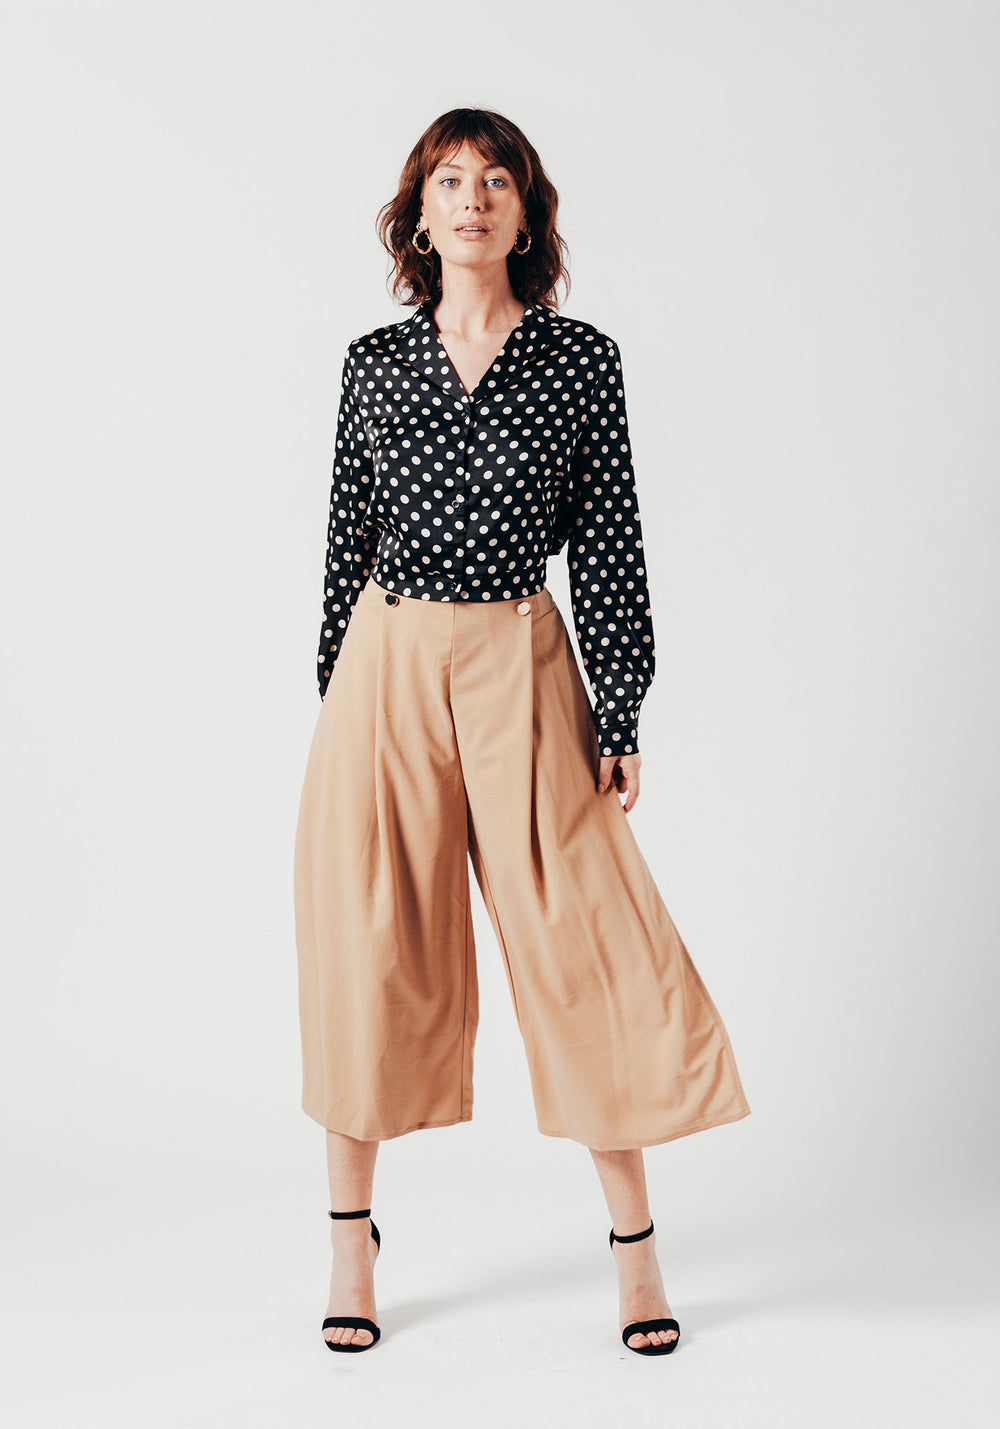 Satin Black Polka Dot Cropped Shirt